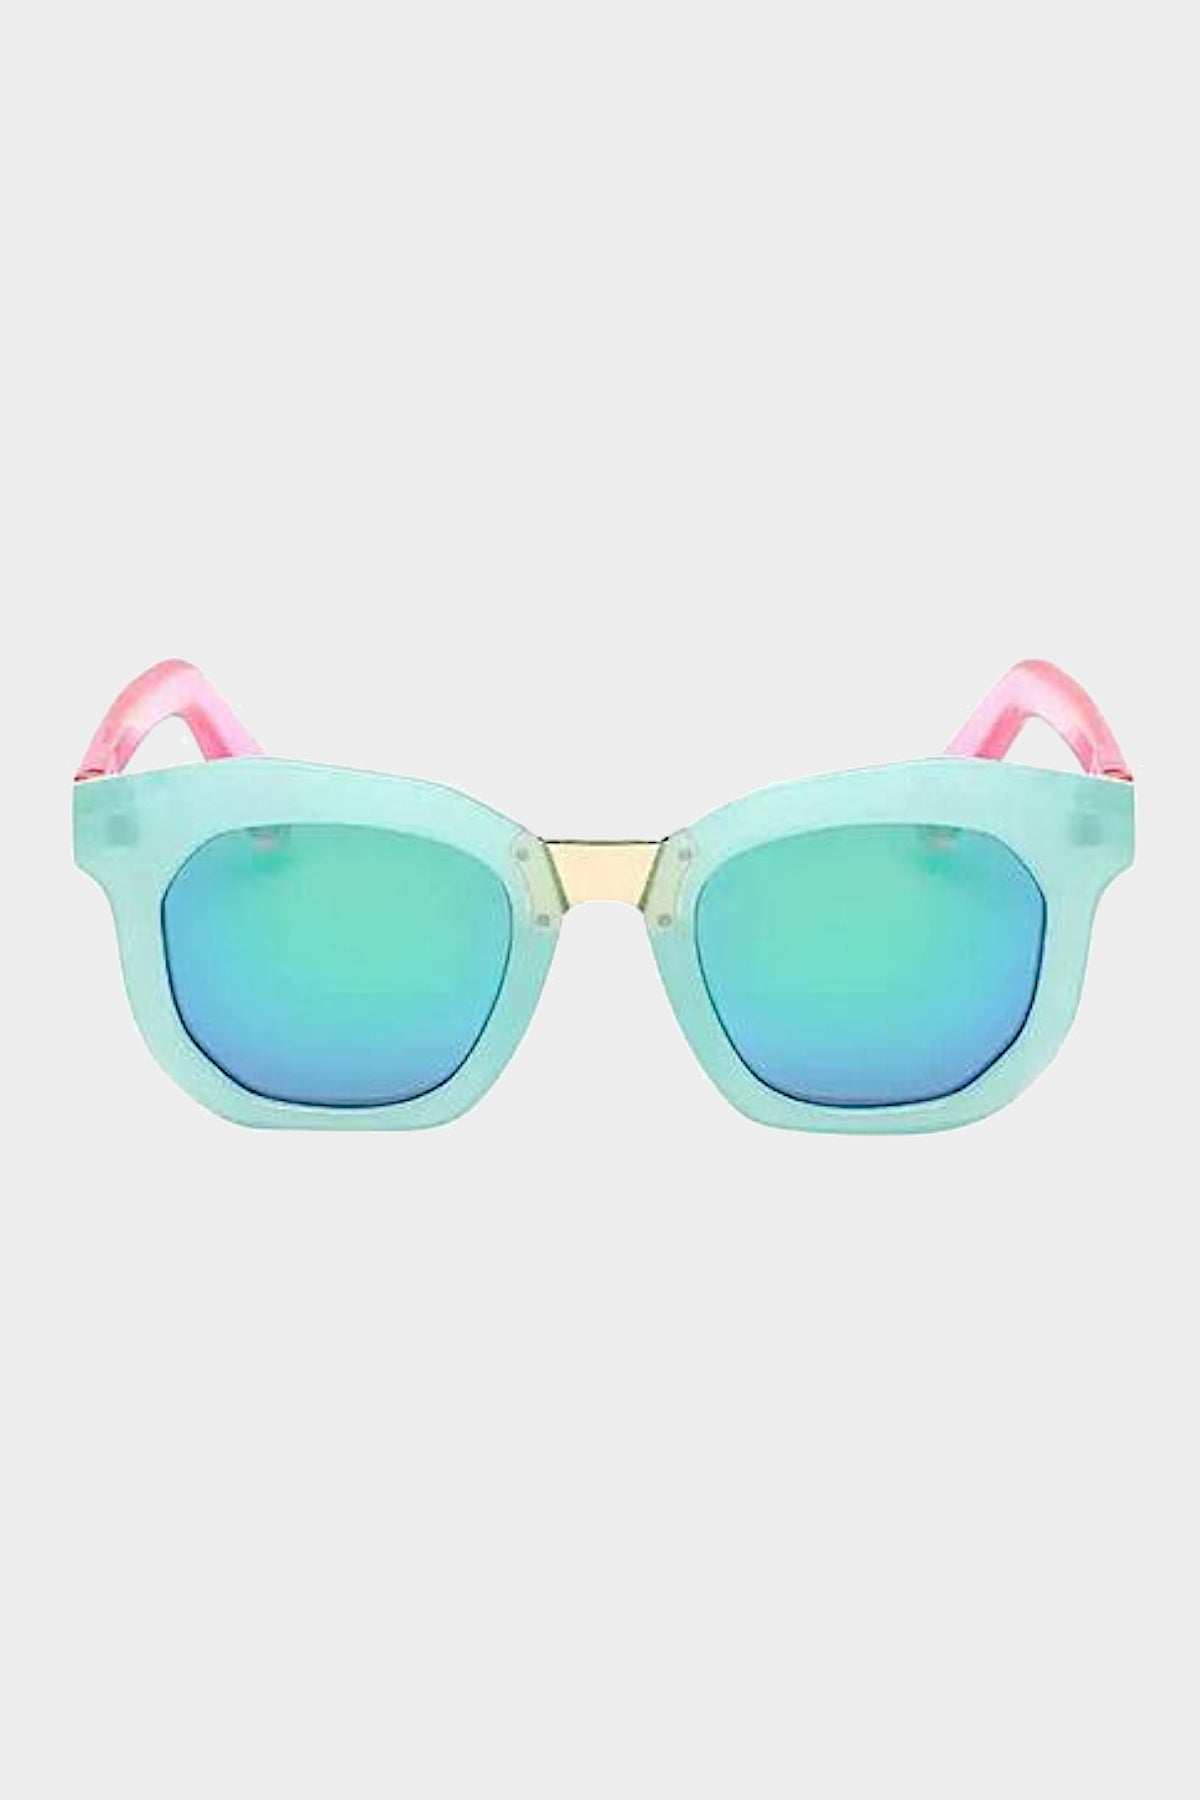 henny and coco hadley sunglasses aqua blue and pink